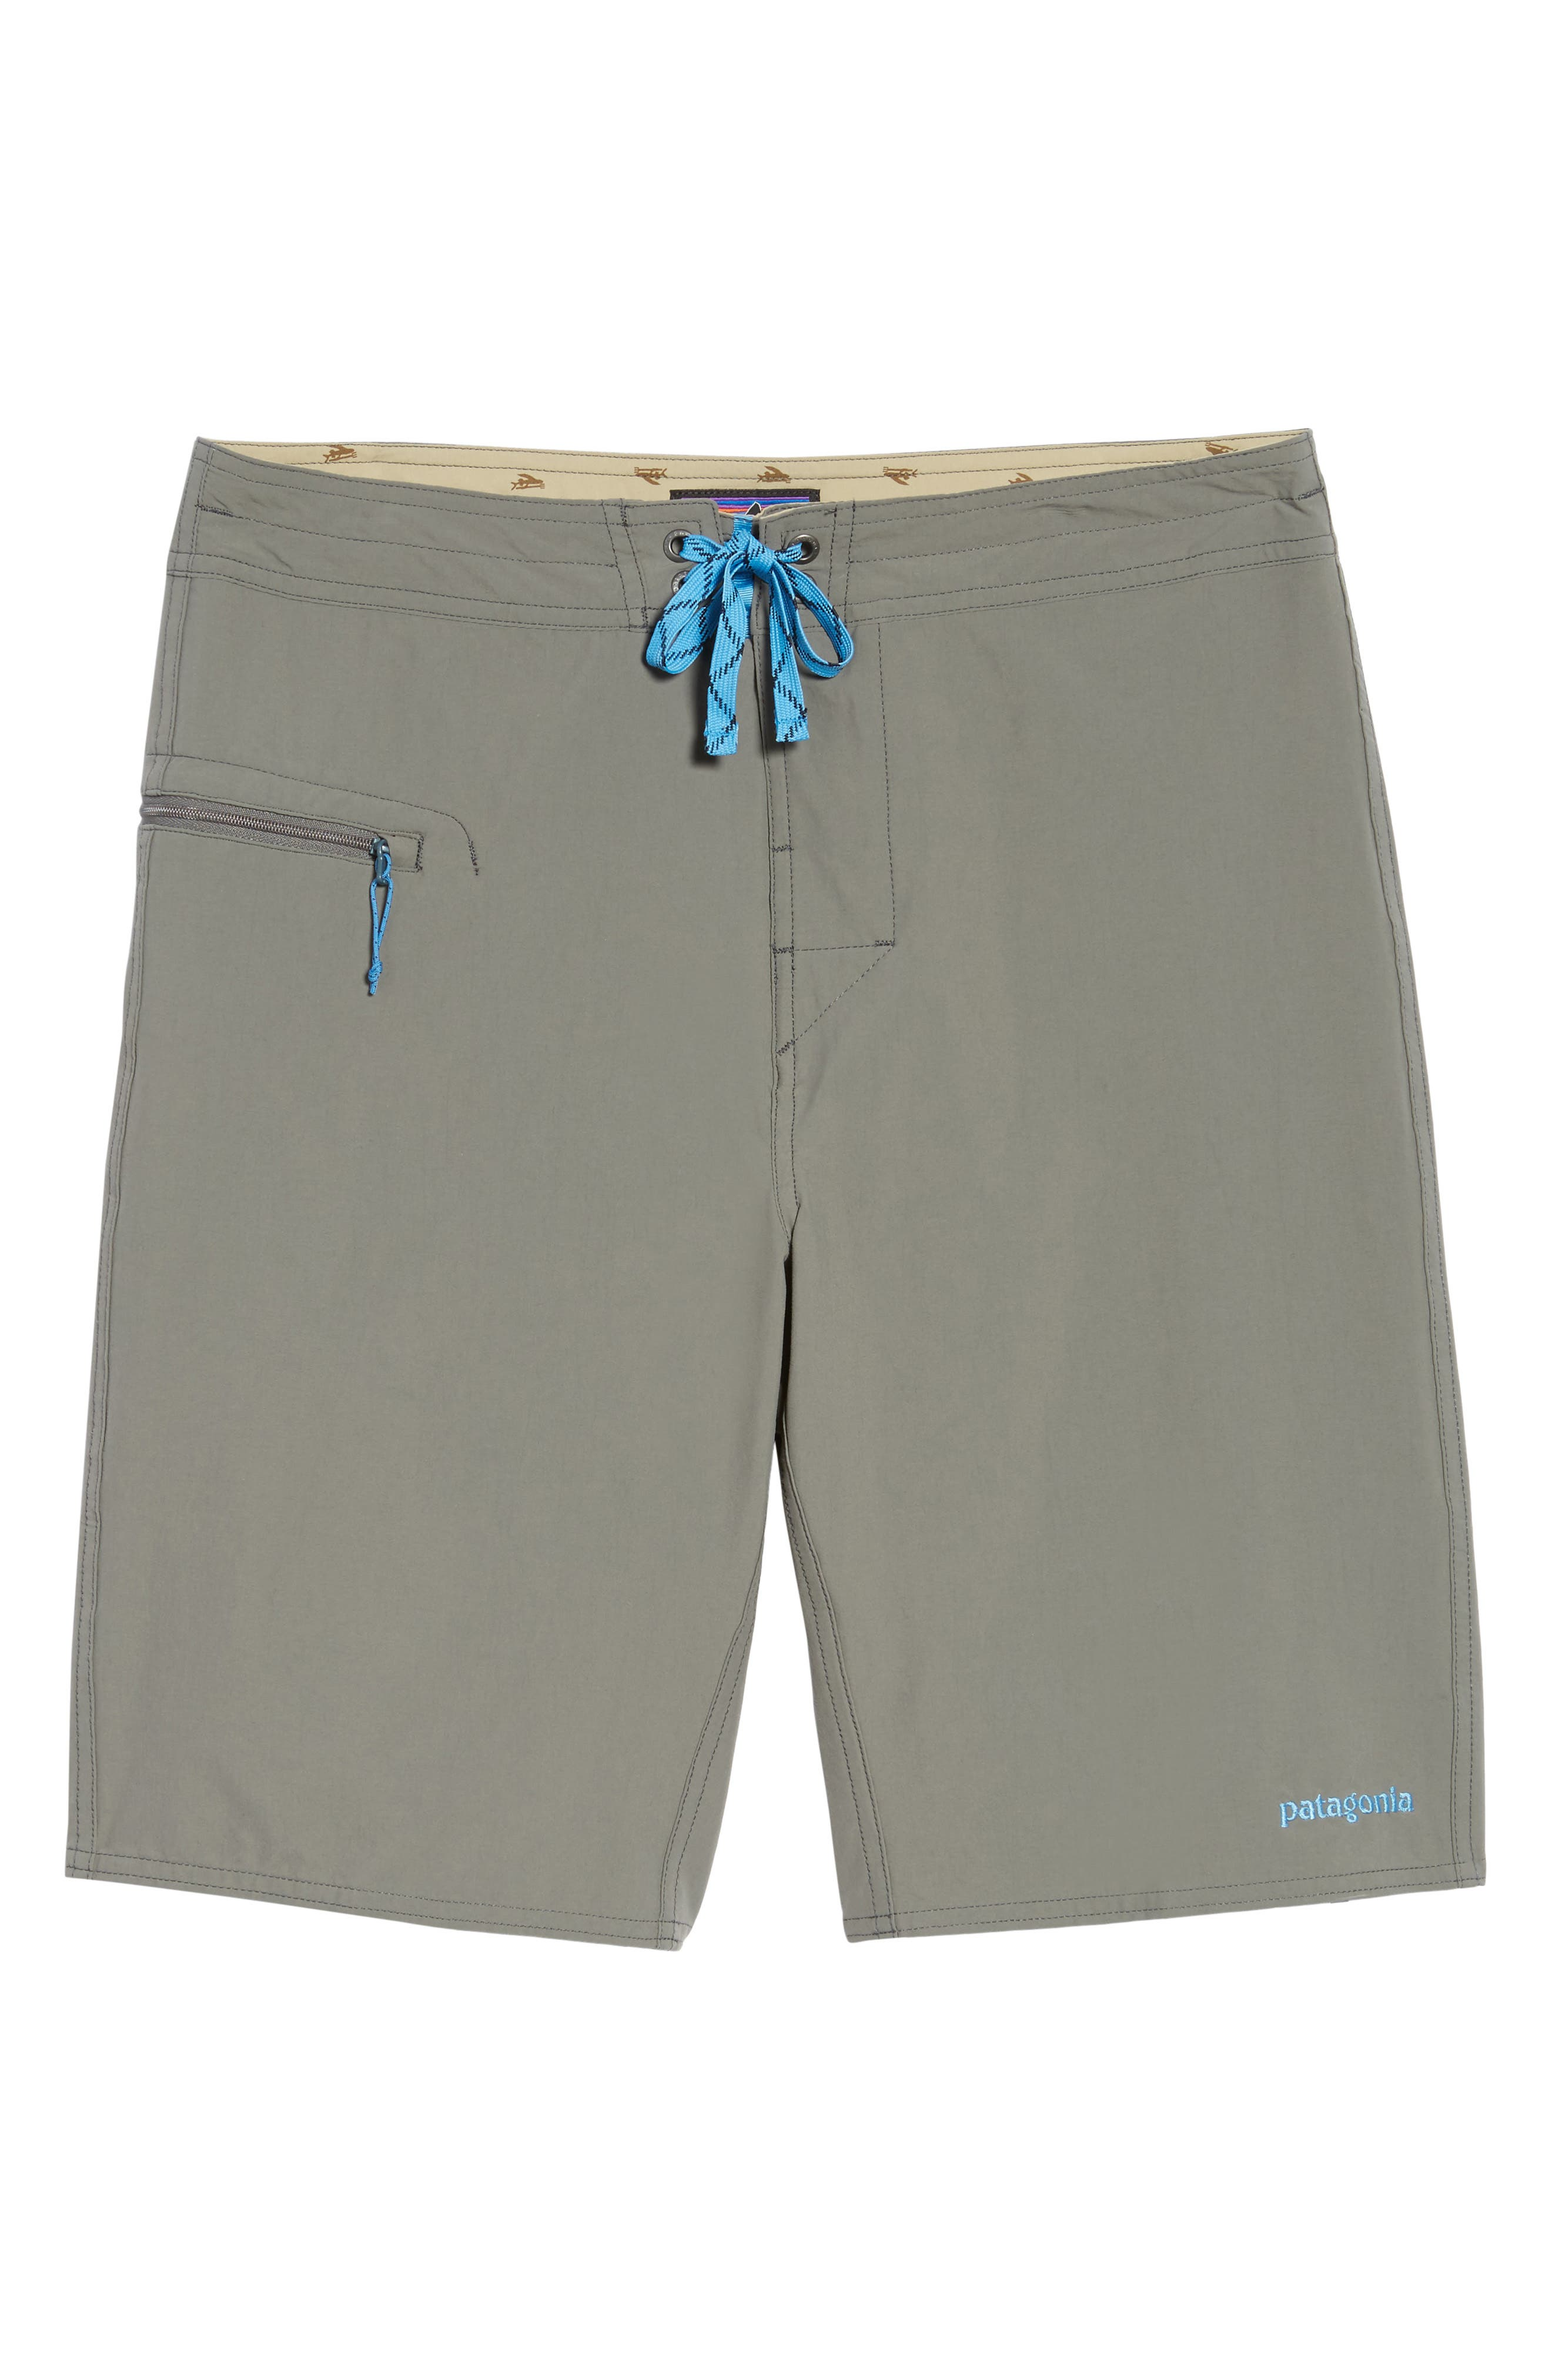 Wavefarer Board Shorts,                             Alternate thumbnail 6, color,                             021